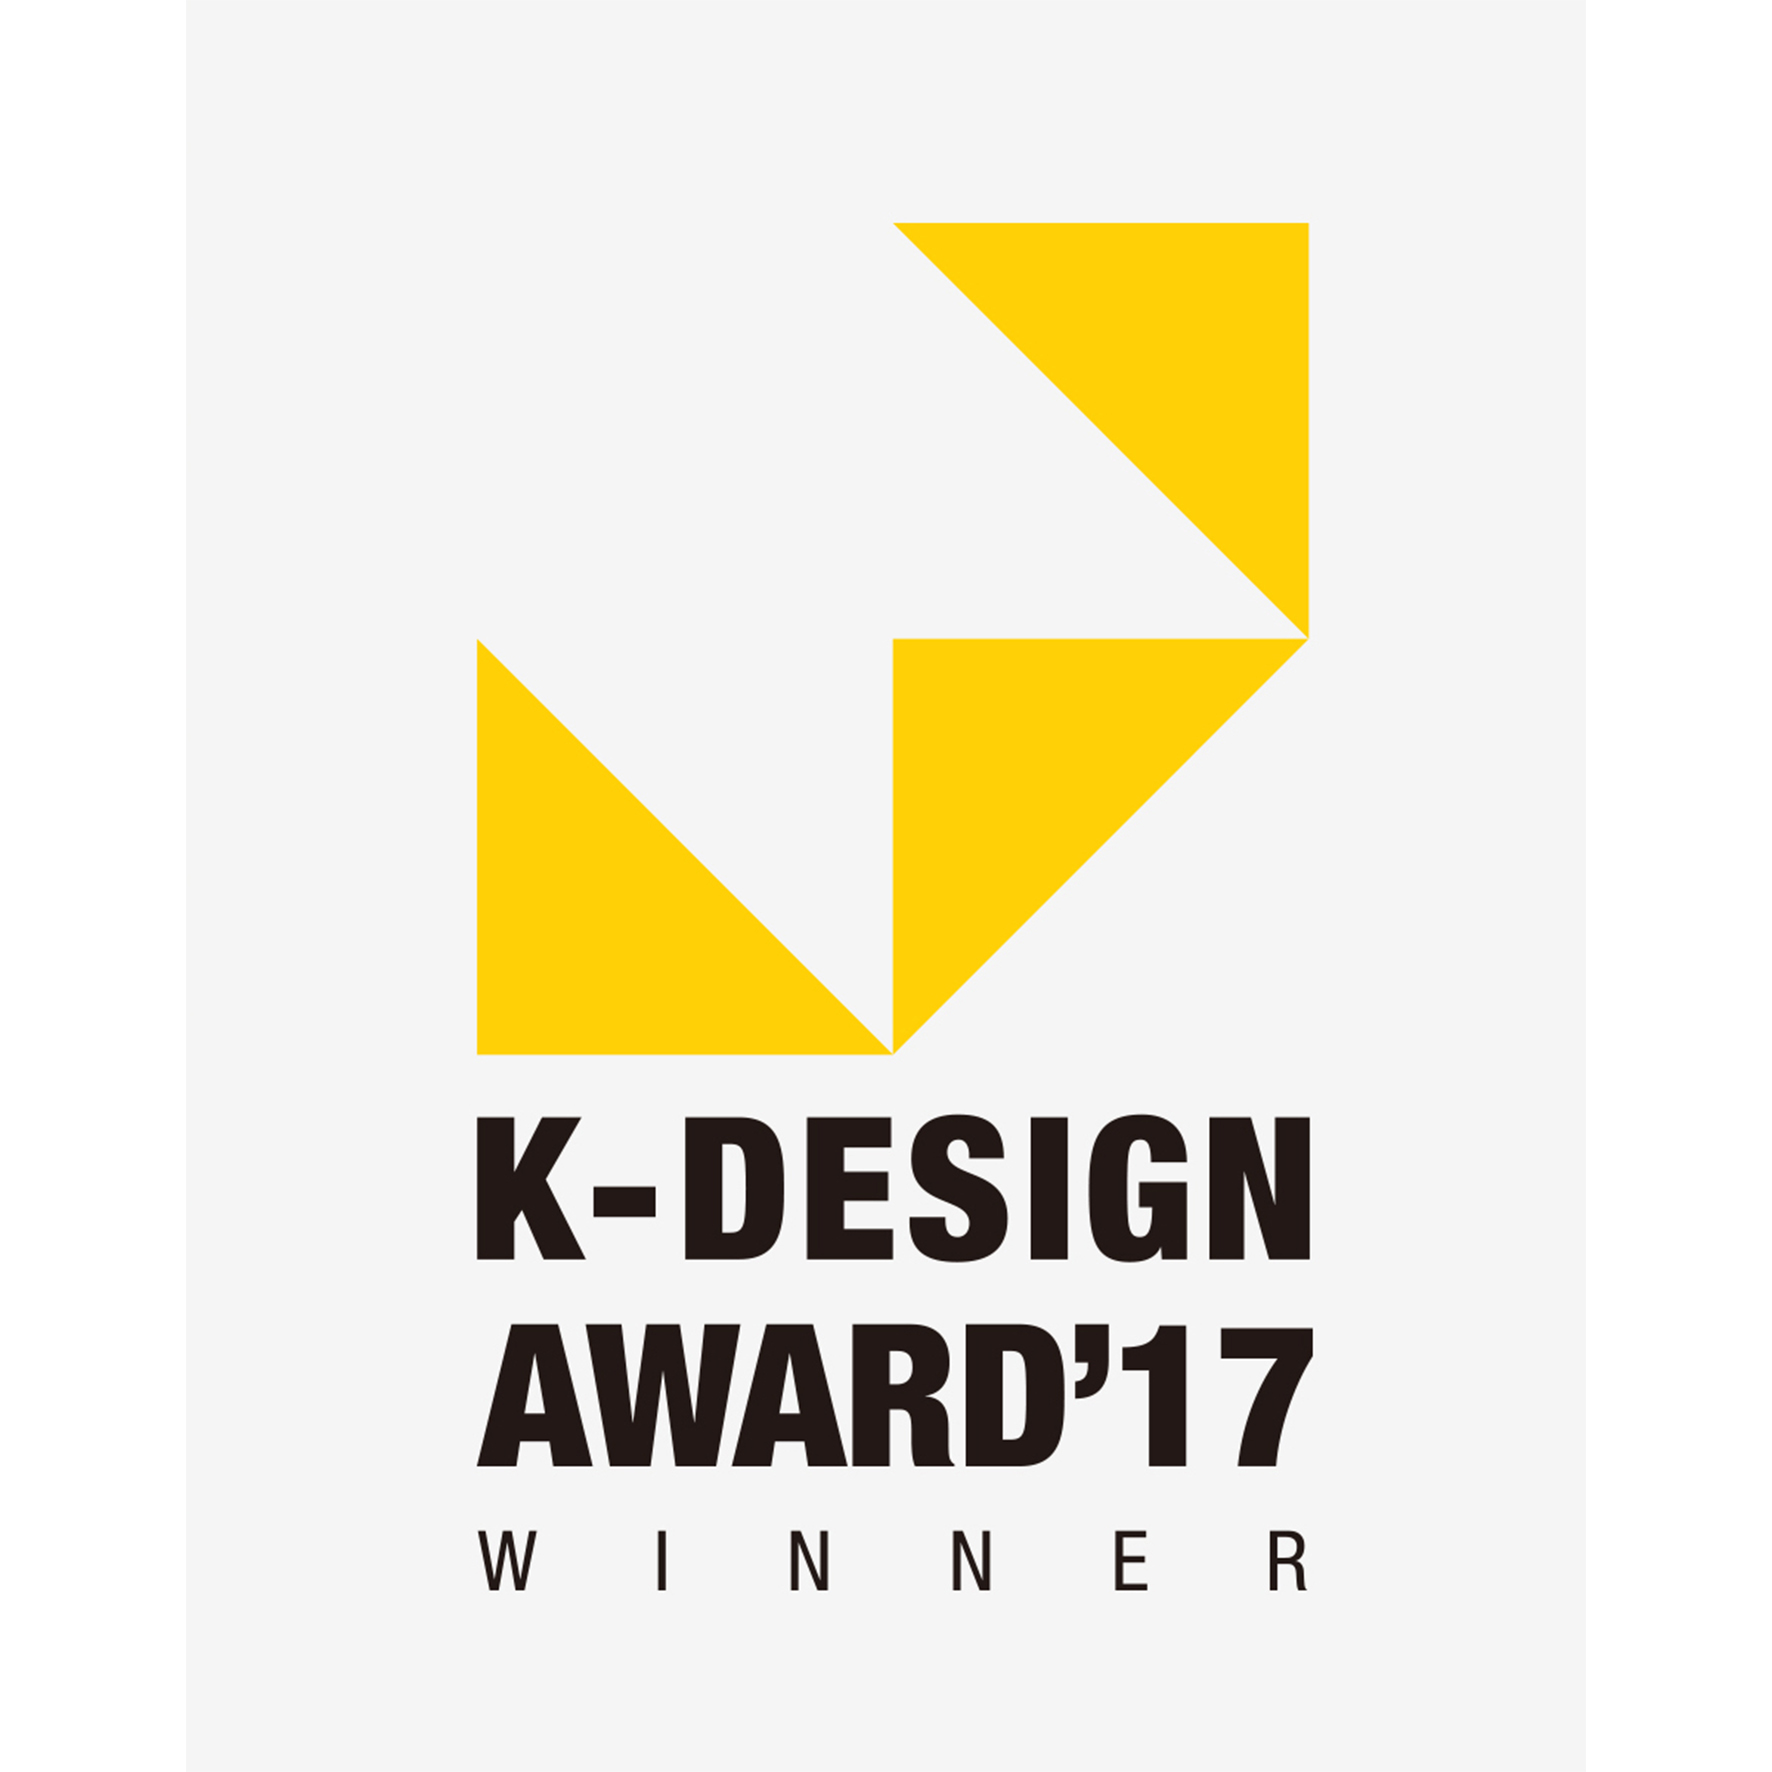 Bronze Winner, K-Design Award 2017